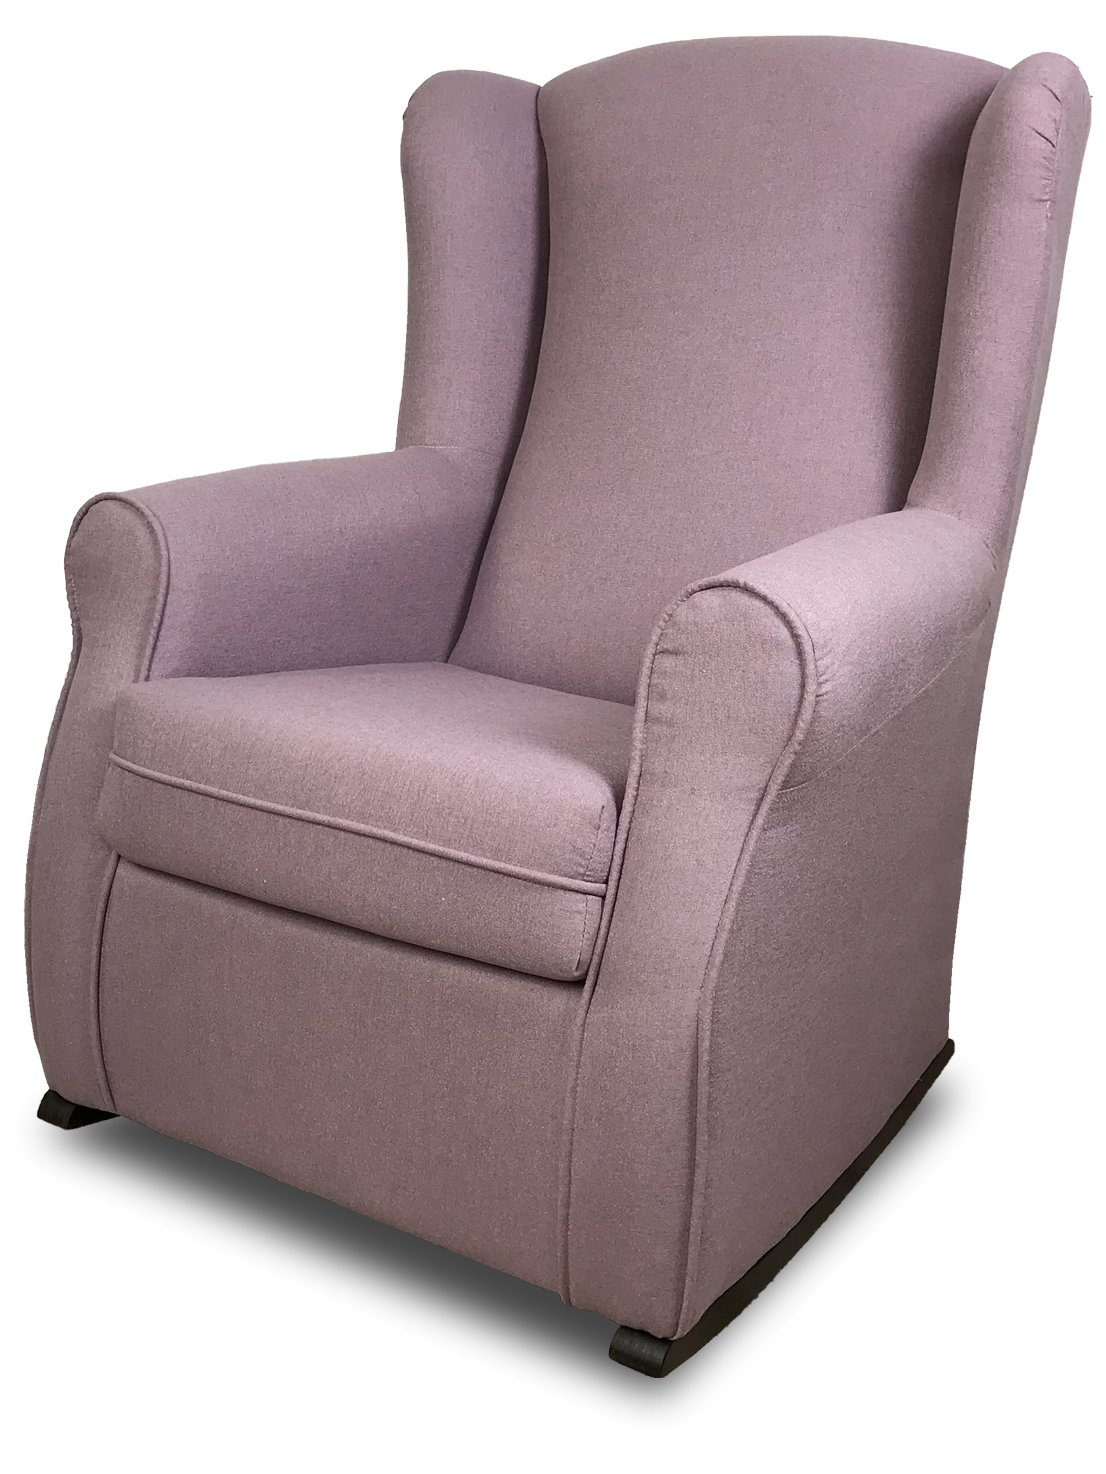 SuenosZzz-House Accent Rocking Chair. Perfect nursing chair. Upholstery fabric. Lilac. Measurements: 102 x 76 x 74. Wood legs.